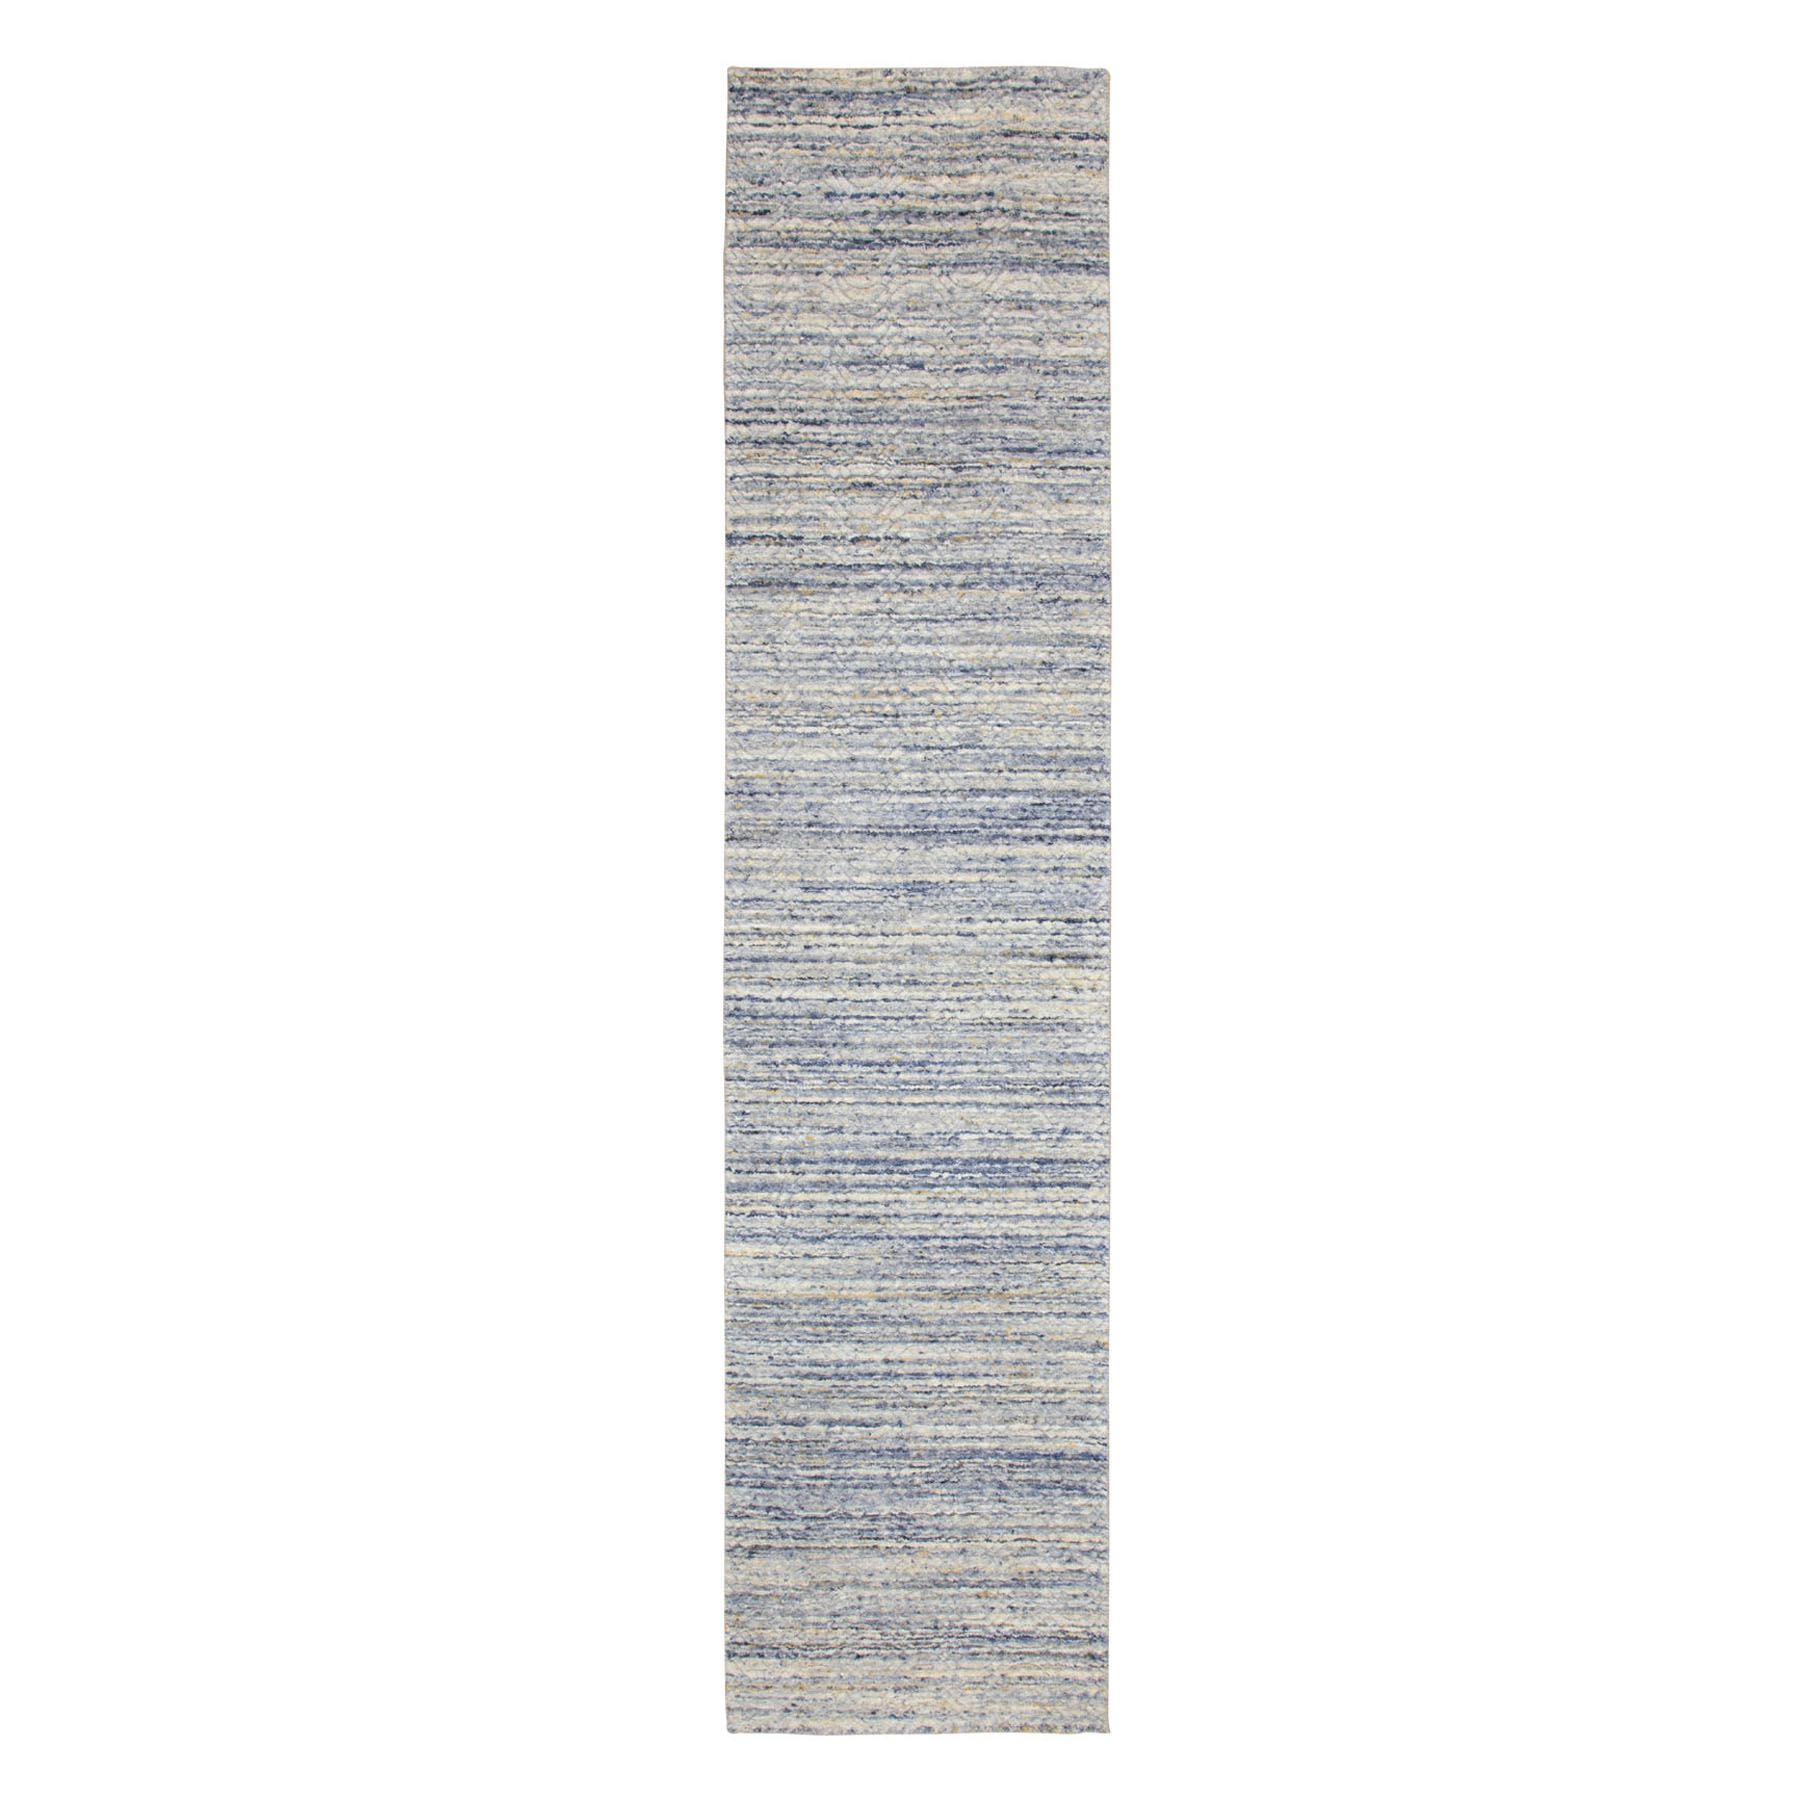 Mid Century Modern Collection Hand Loomed Grey Rug No: 1116806